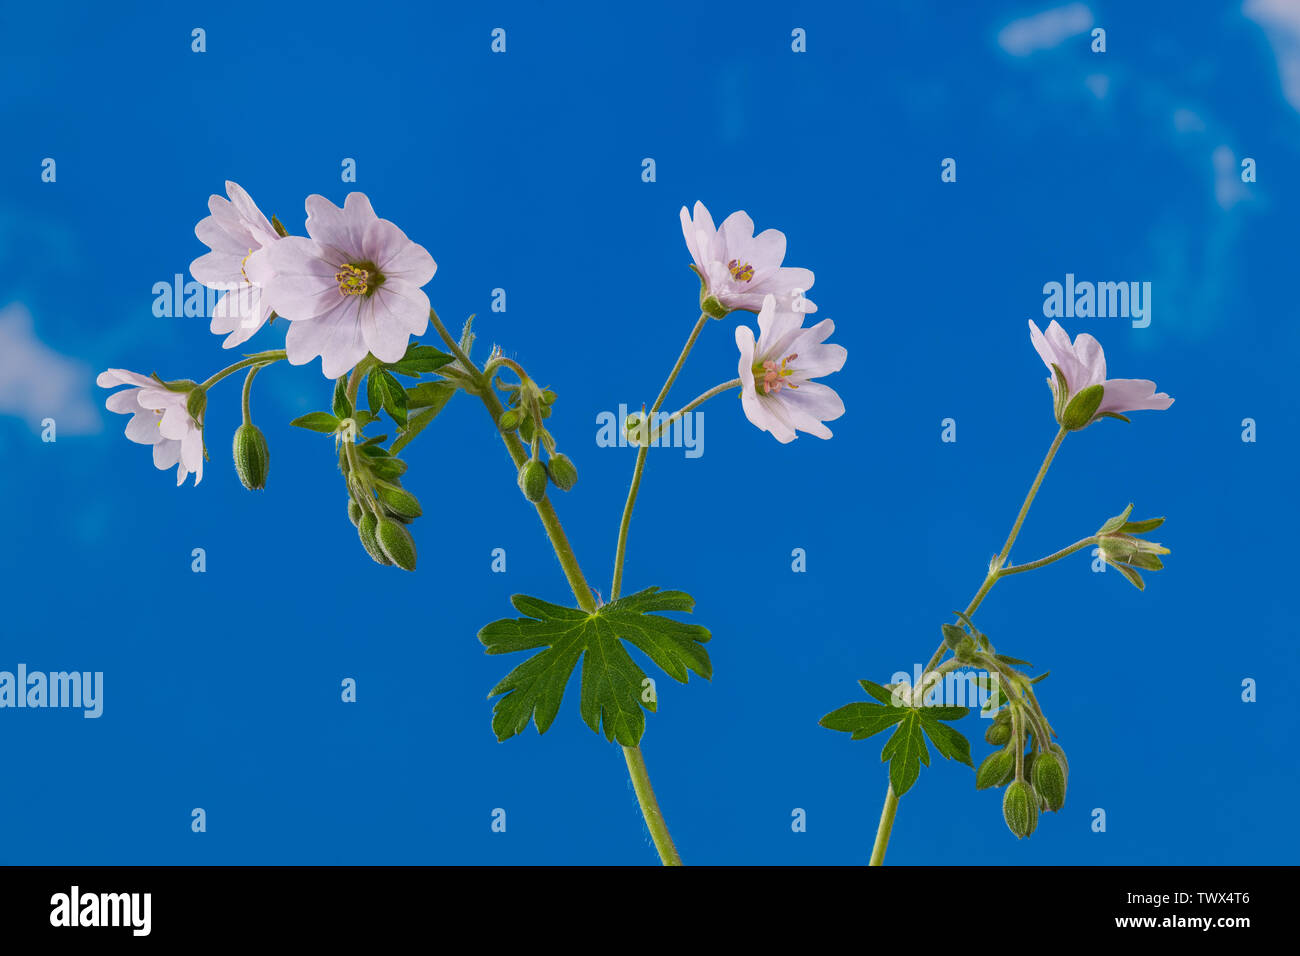 White flowering cranesbills. Blooms, buds green hairy leaves and stems. Geranium pyrenaicum. Detail of wild meadow herb blossom on blue sky background. - Stock Image